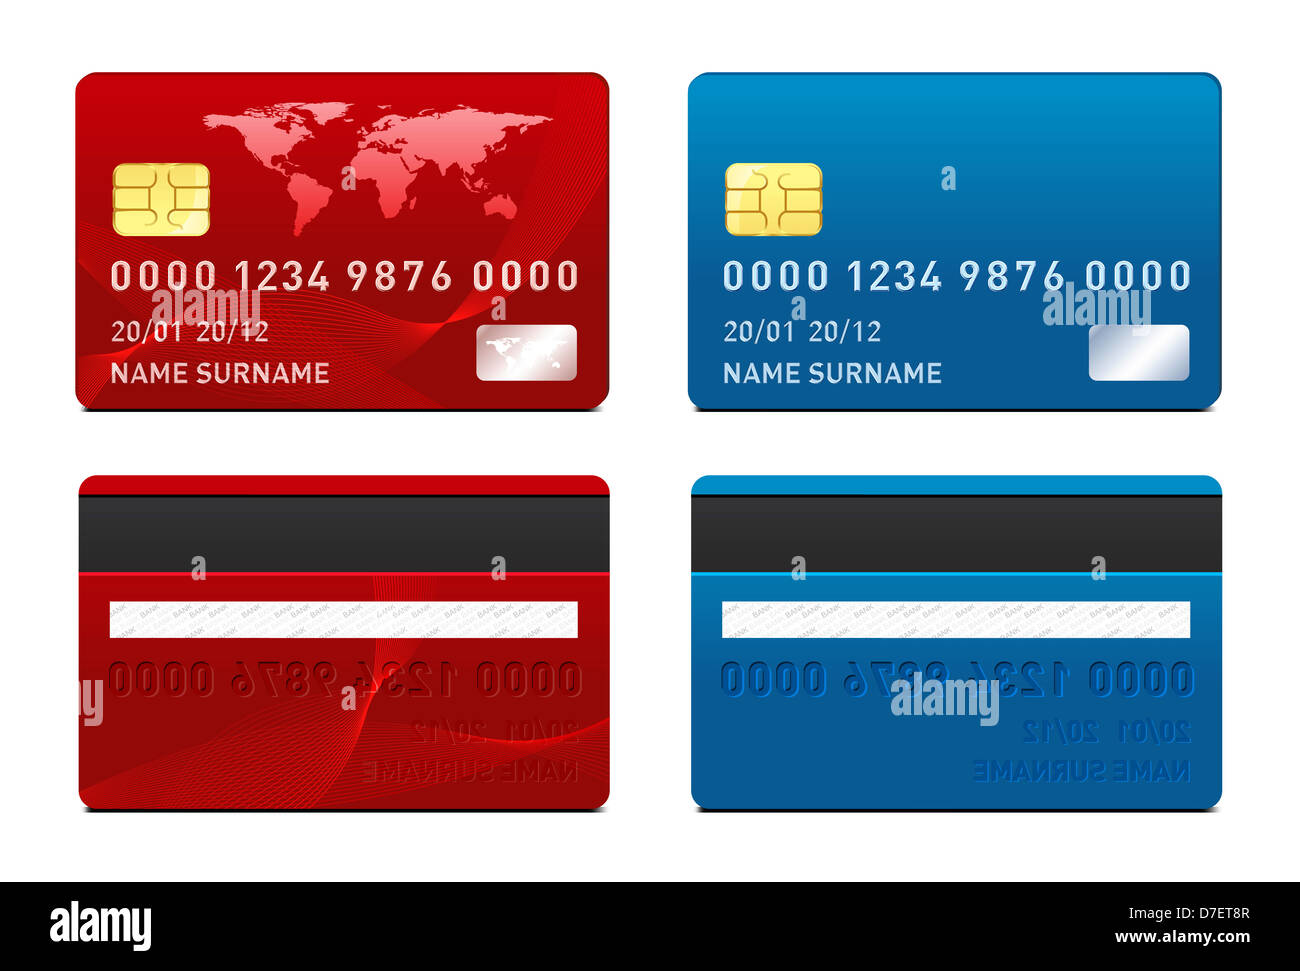 credit card template front and back side stock photo 56260087 alamy